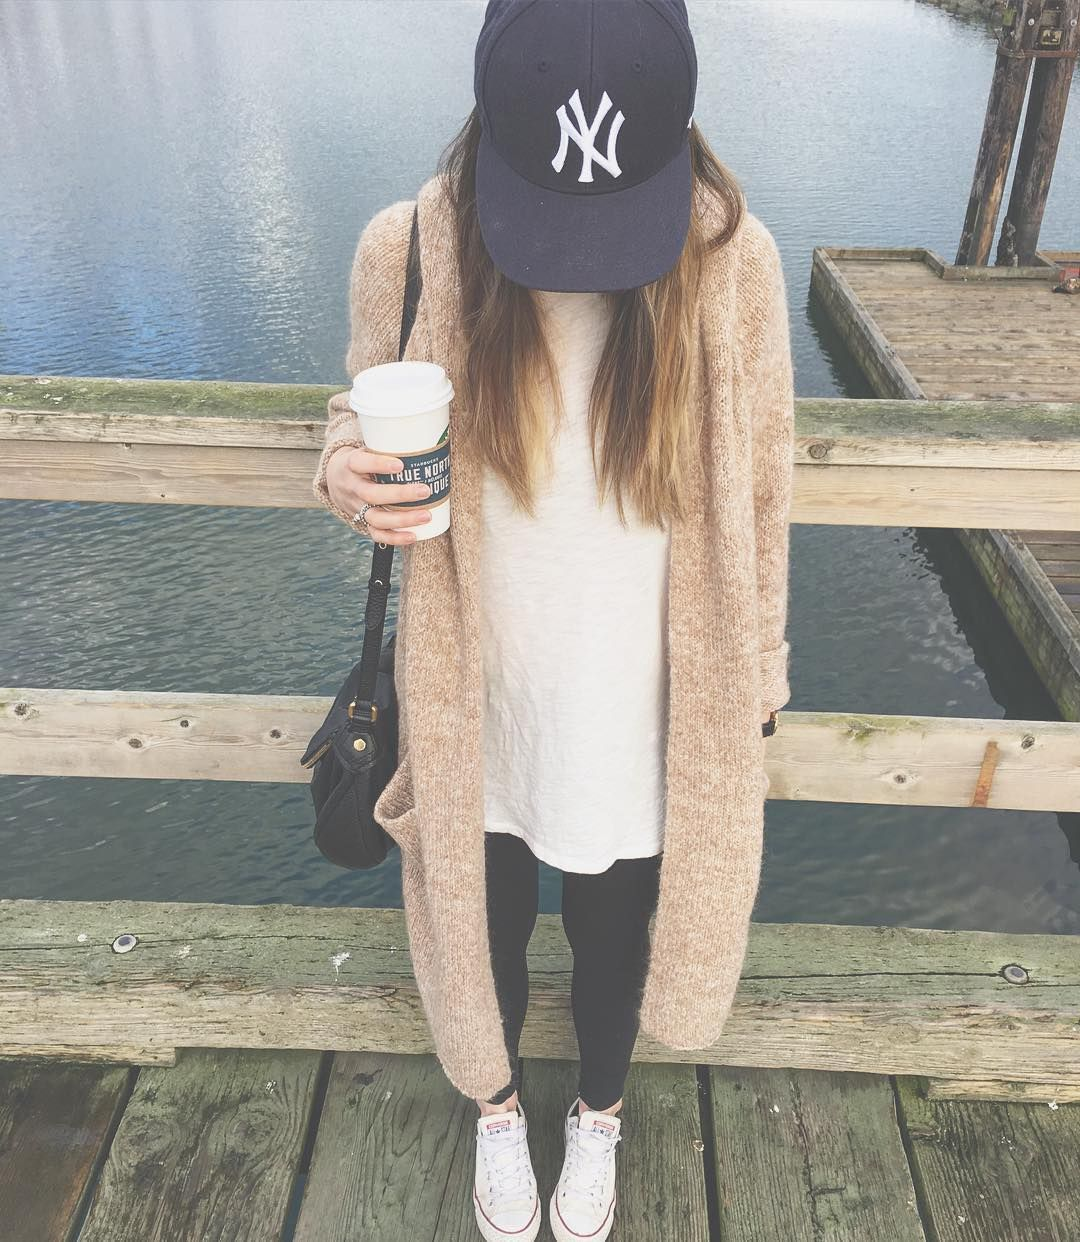 430e2d6c52d ny baseball cap + long aritzia sweater